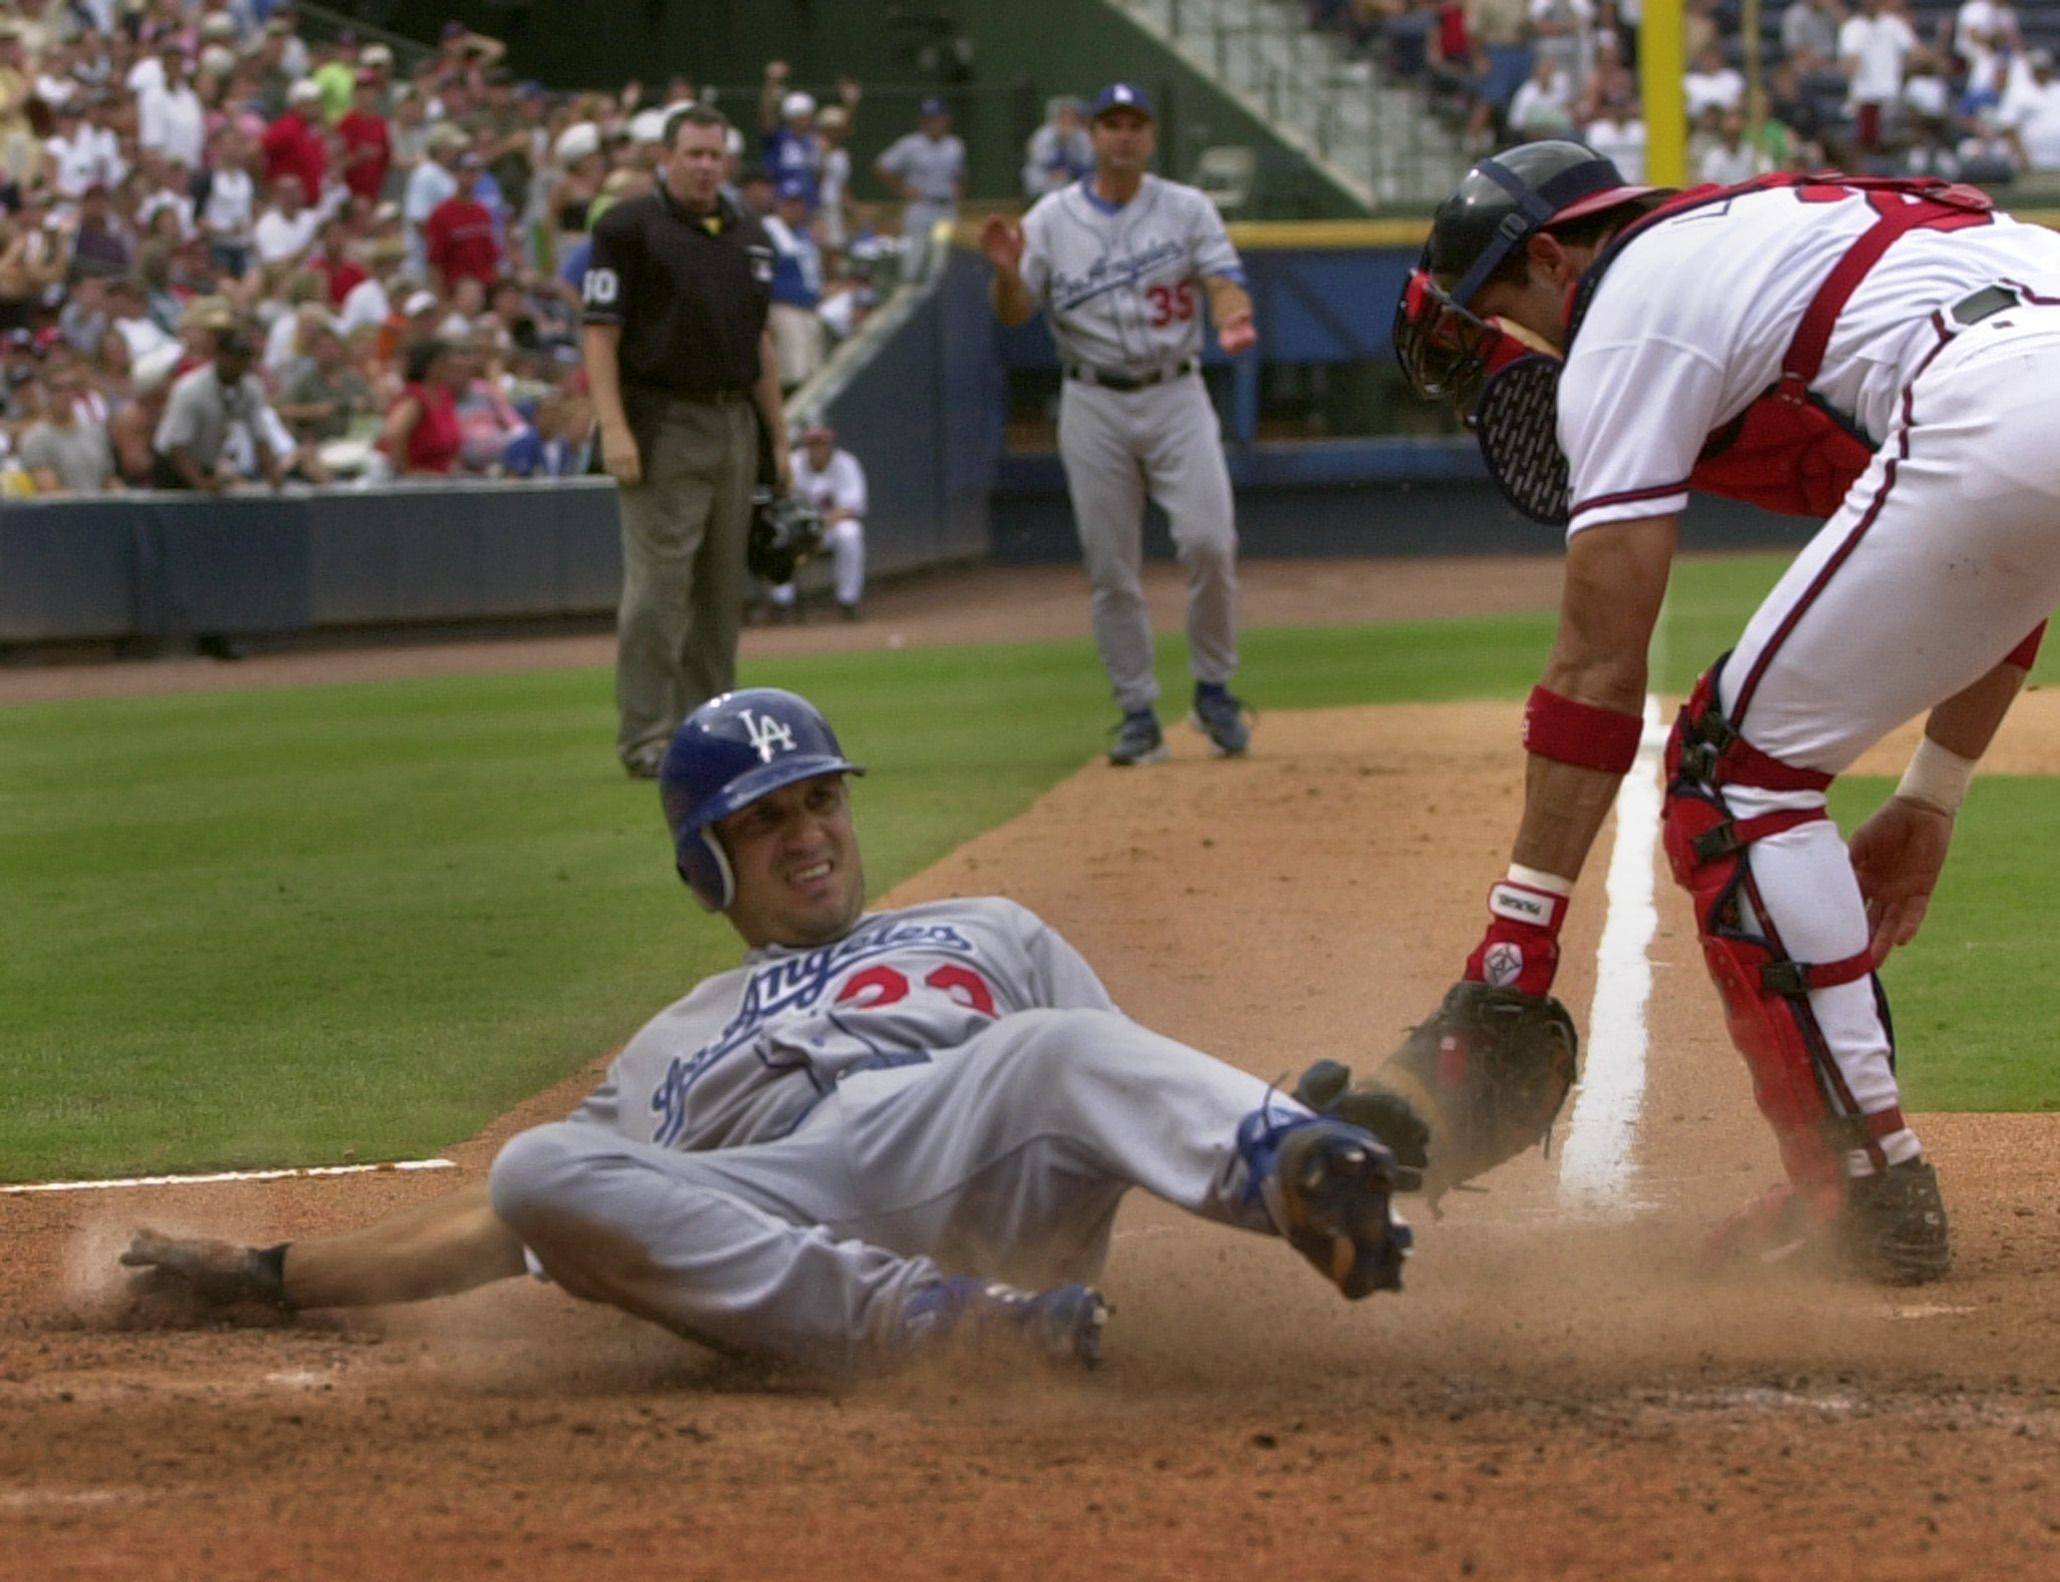 Los Angeles Dodgers Robin Ventura slides into home safe, for an inside-the-park home run as Atlanta Braves catcher Javy Lopez, right, makes a late tag in the seventh inning, Sunday, Aug. 3, 2003, at Turner Field in Atlanta. The Dodgers went on to defeat the Braves 8-4.